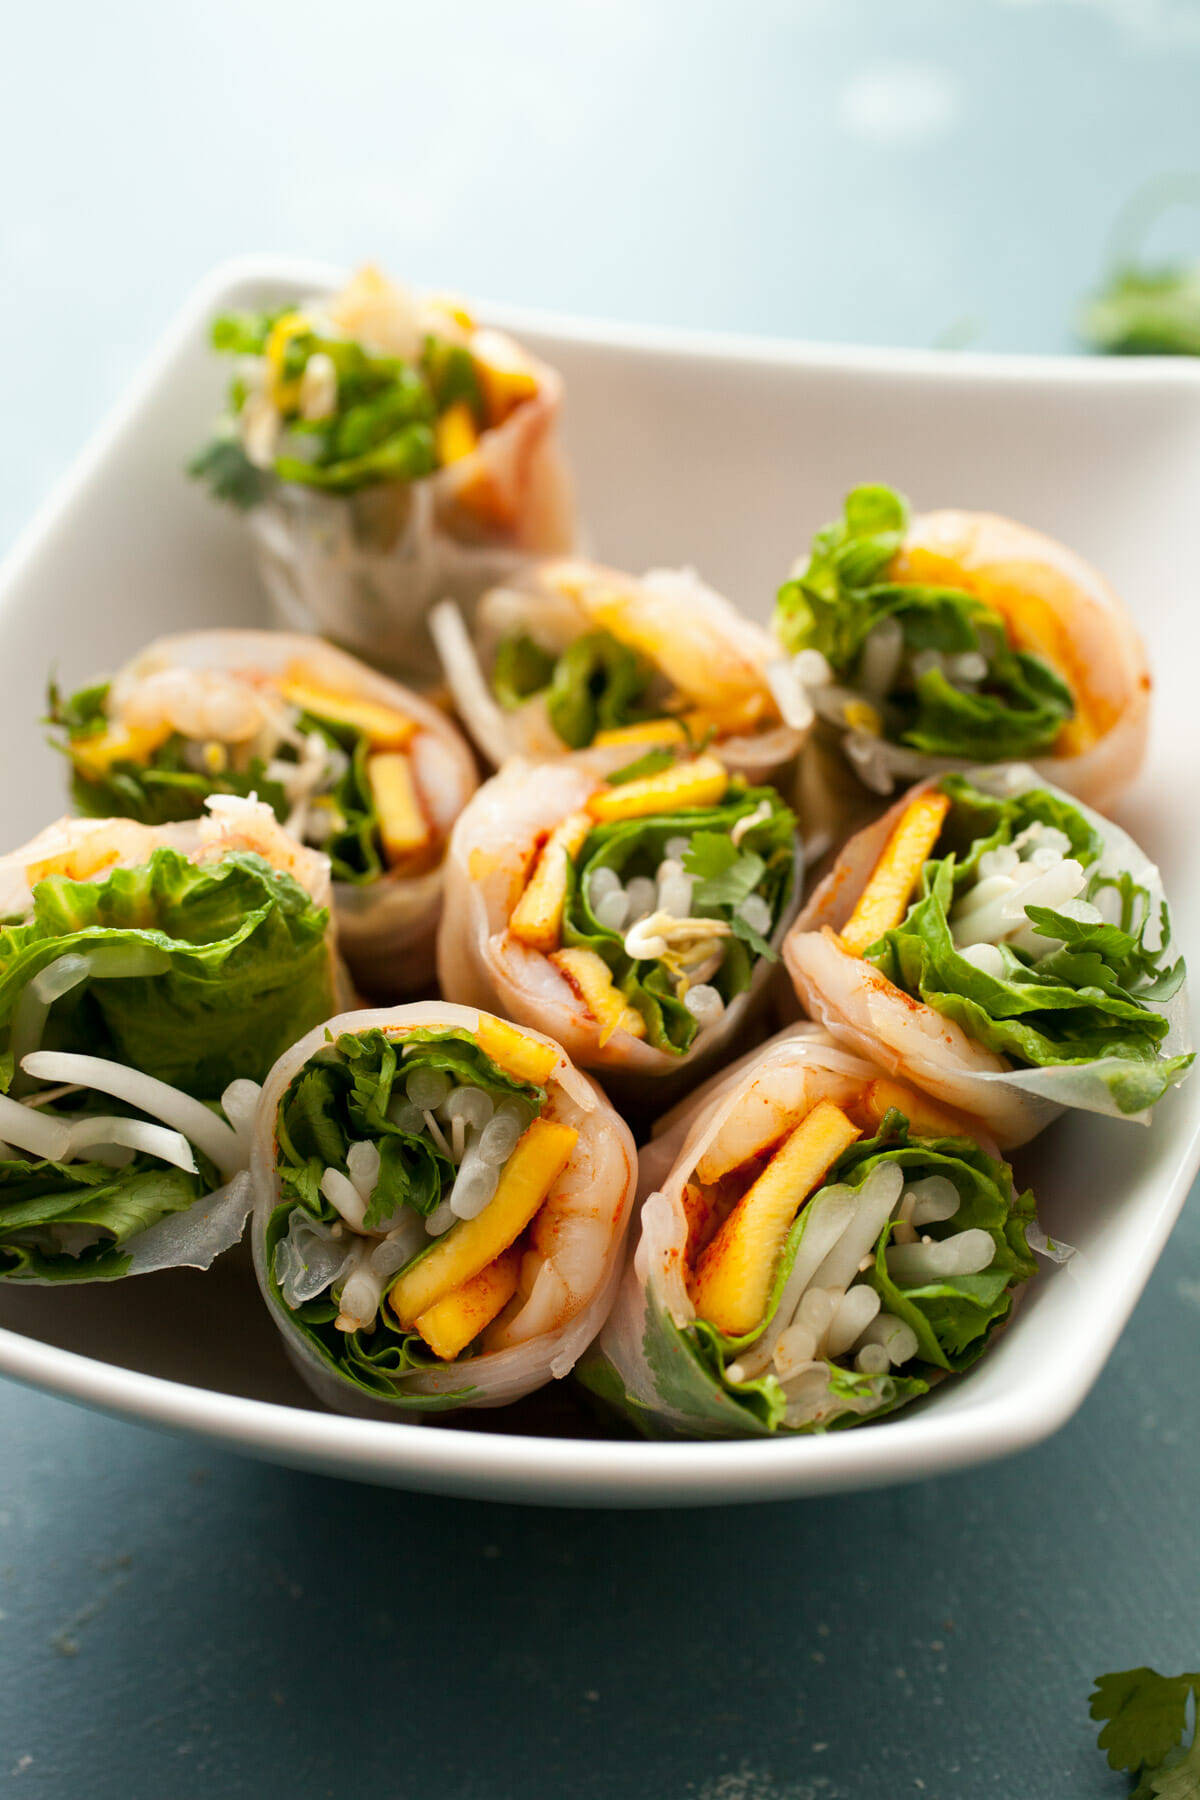 Chili Mango Shrimp Spring Rolls: These Light And Refreshing Spring Rolls  Are The Perfect Way